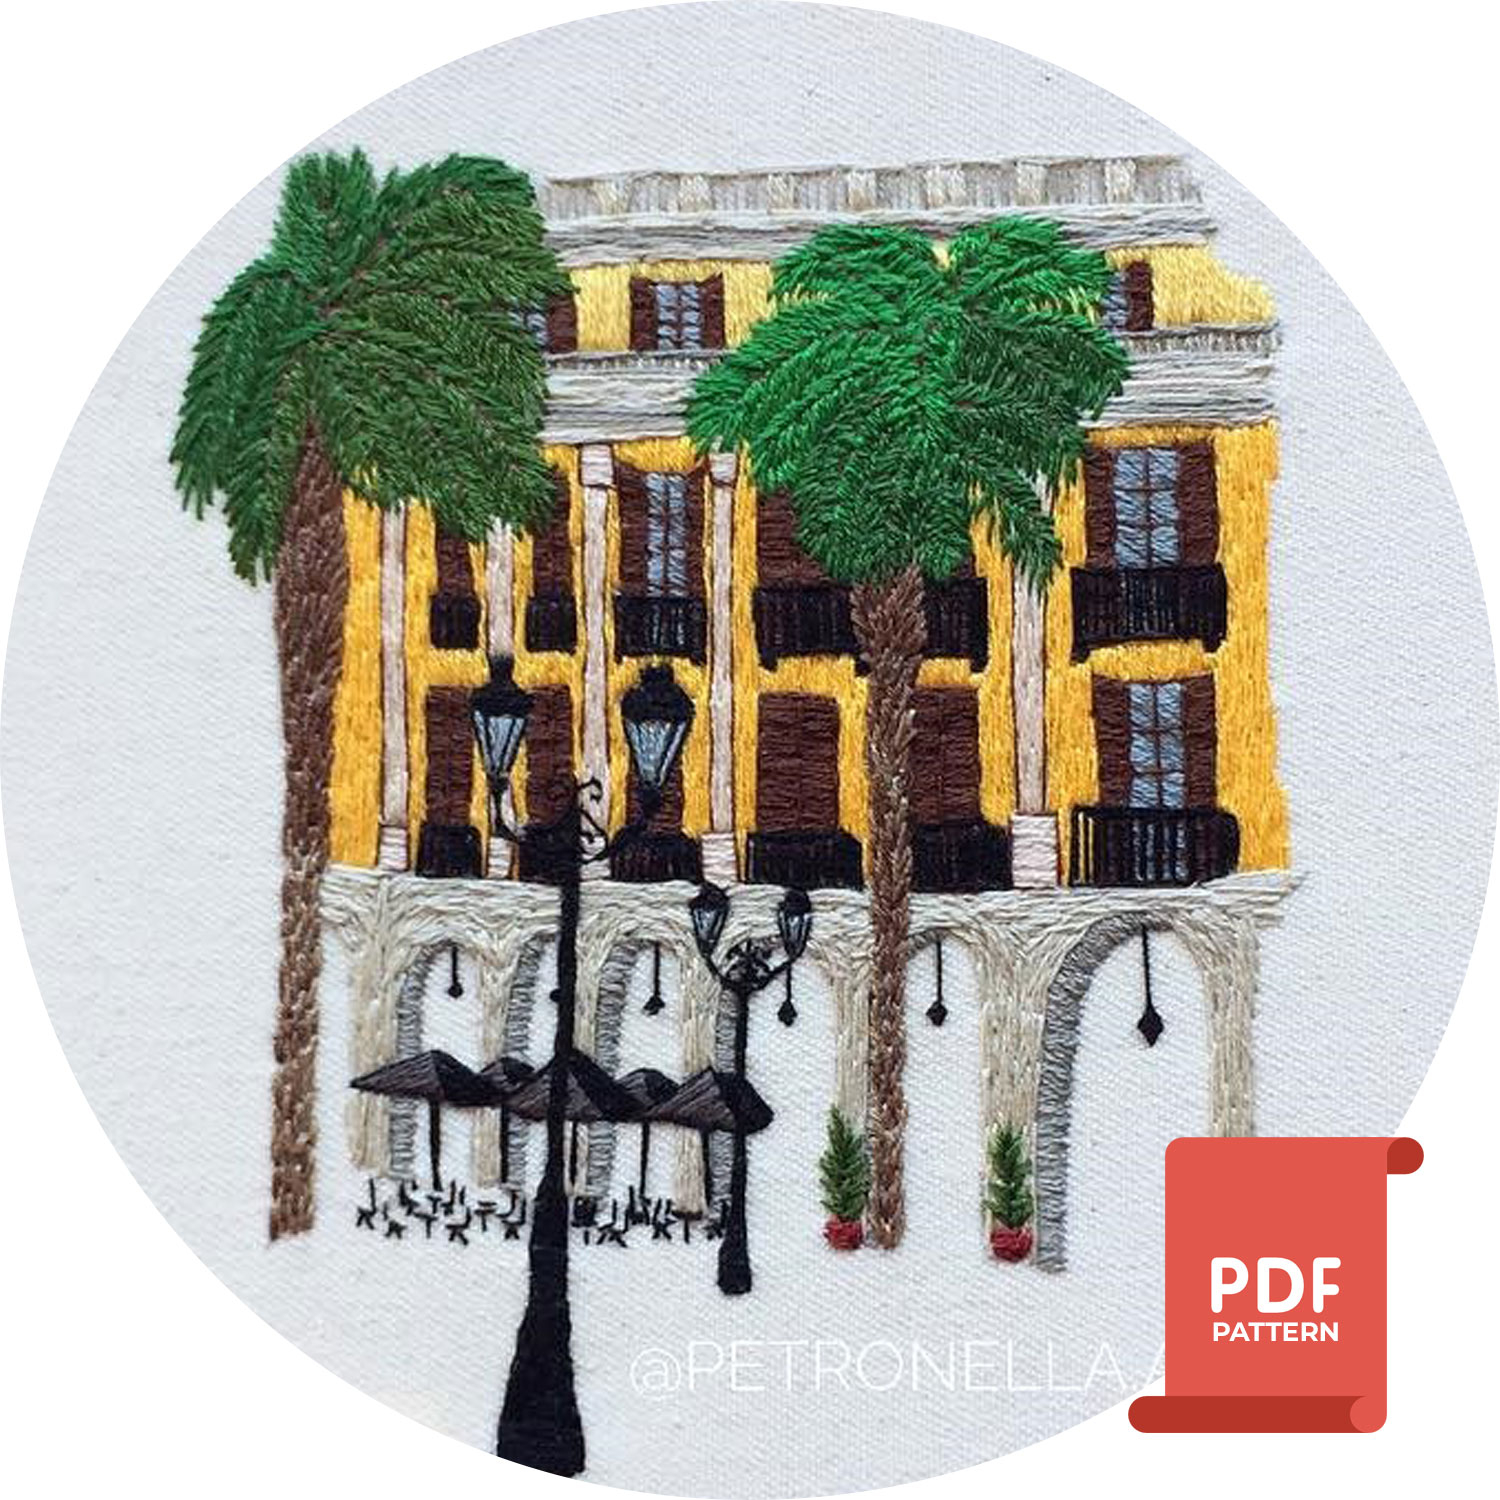 How To Design Embroidery Patterns By Hand Barcelona Embroidery Design Hand Embroidery Pattern